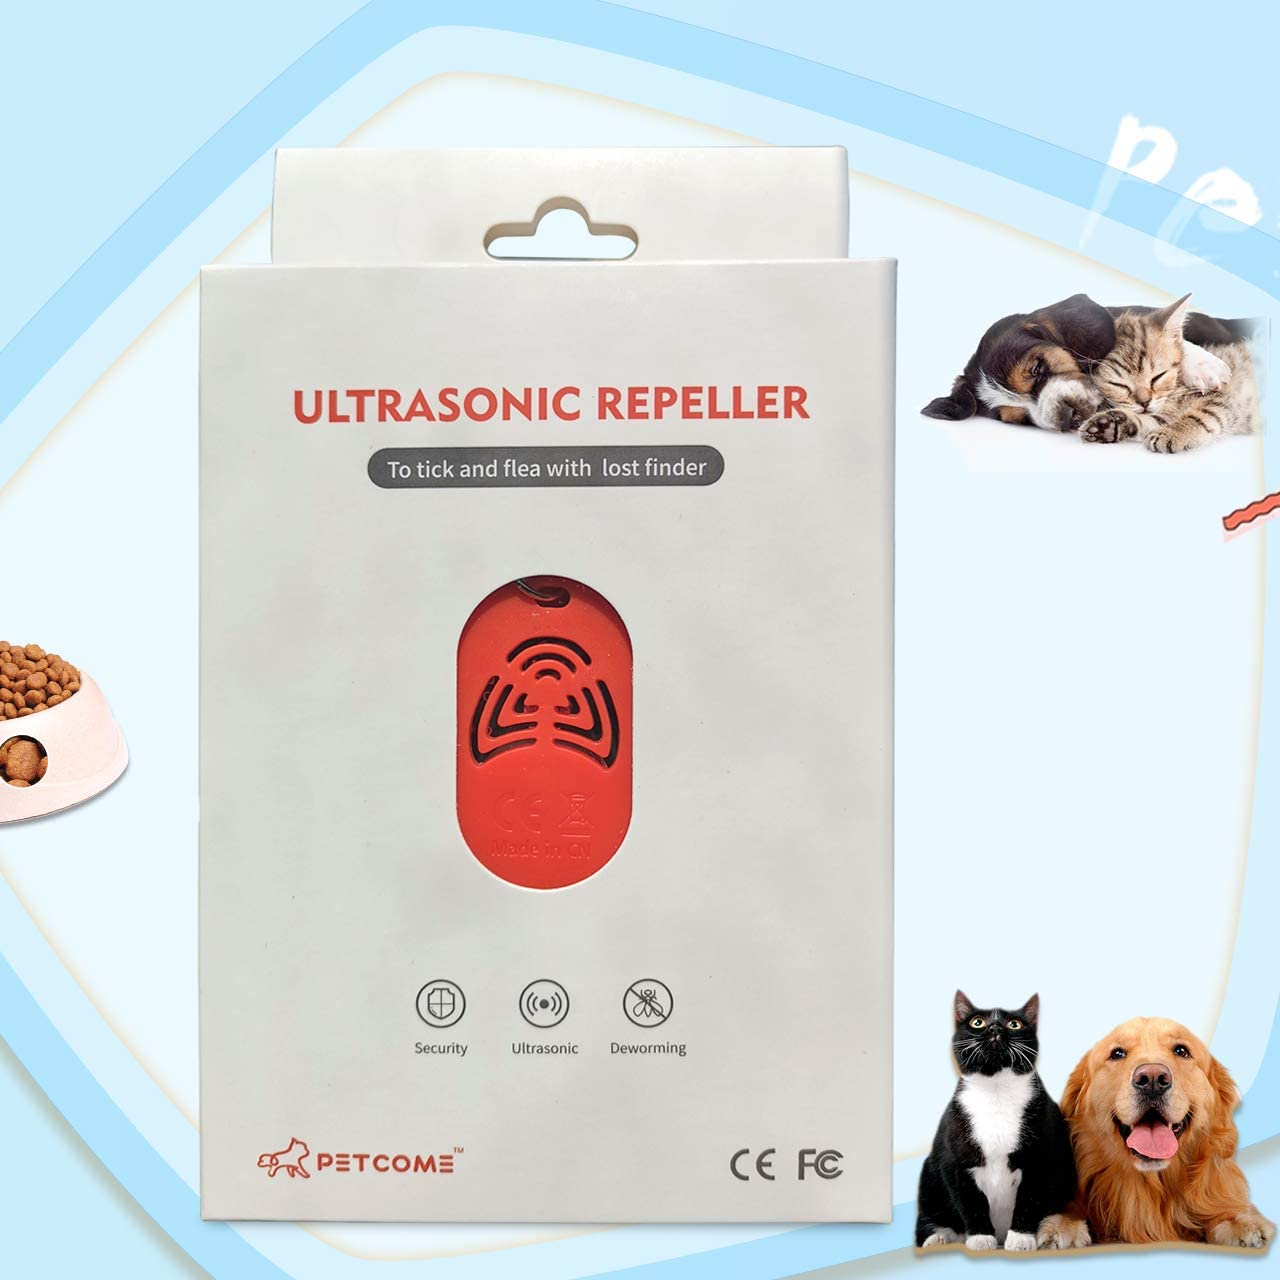 PETCOME Ultrasonic Repeller Collar Tag for Pets with Lost Finder Dog Cat ID Tag with Ultrasonic Function